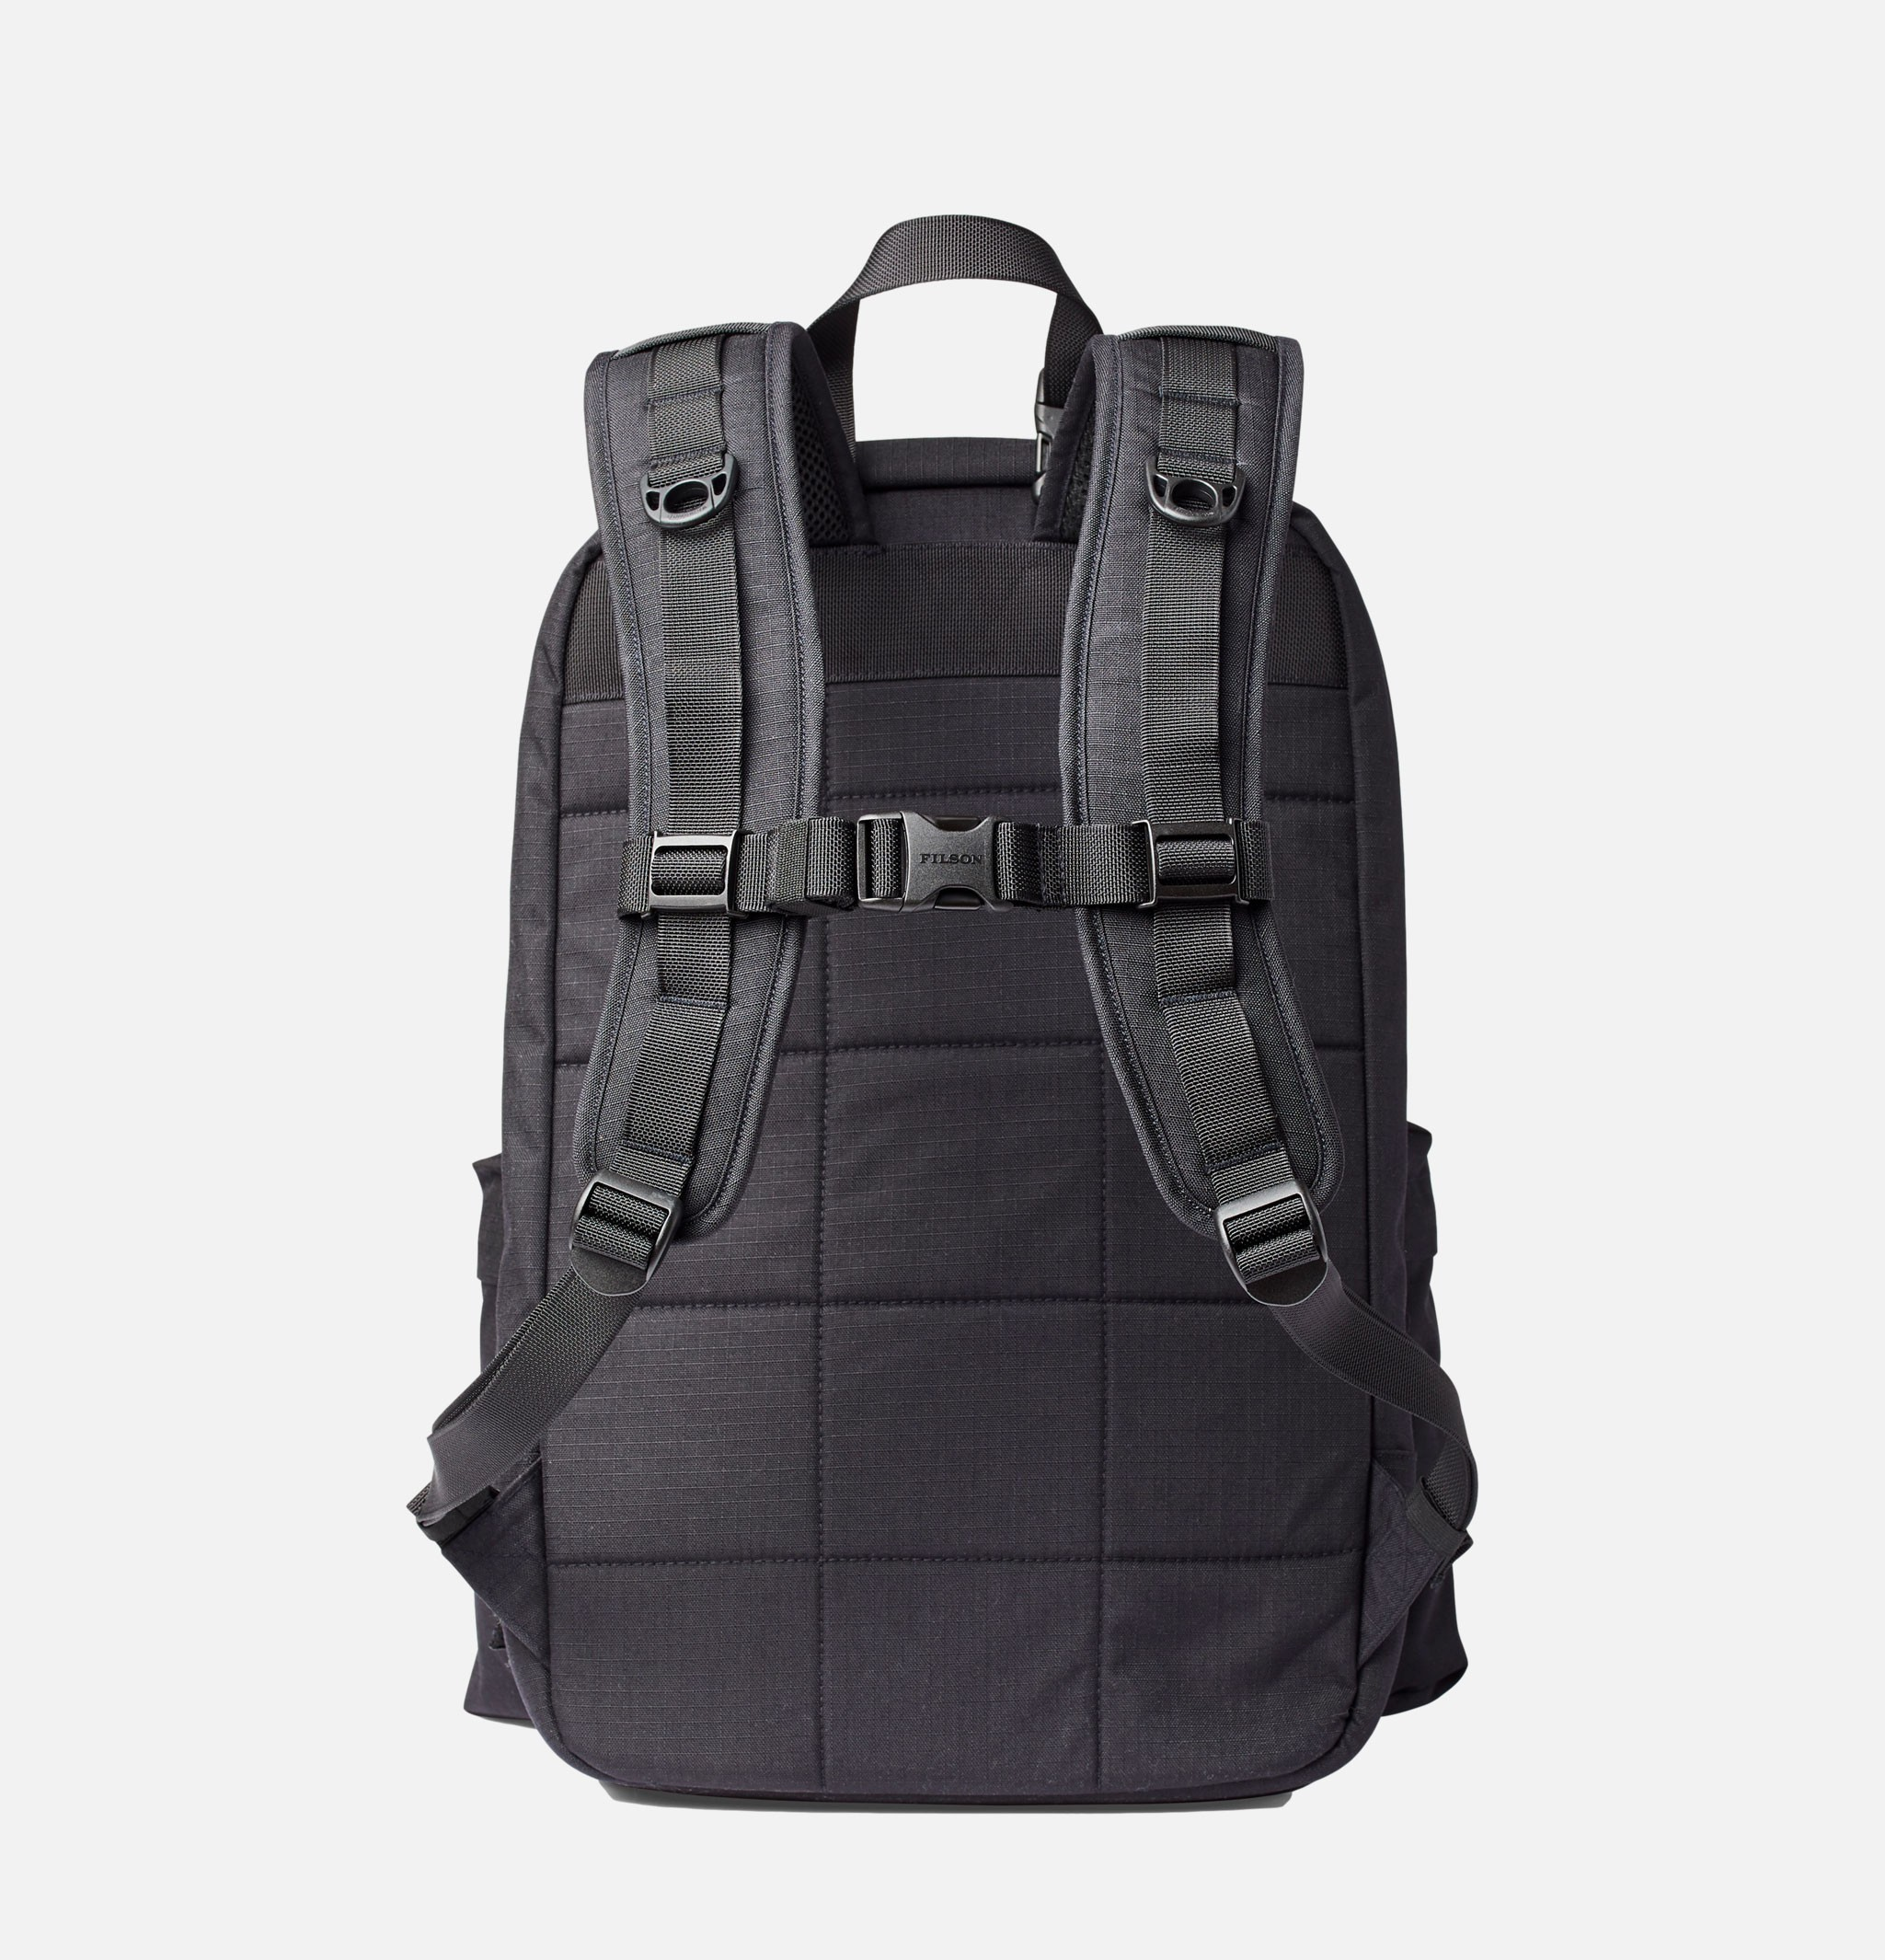 20115929 - Ripstop Backpack...